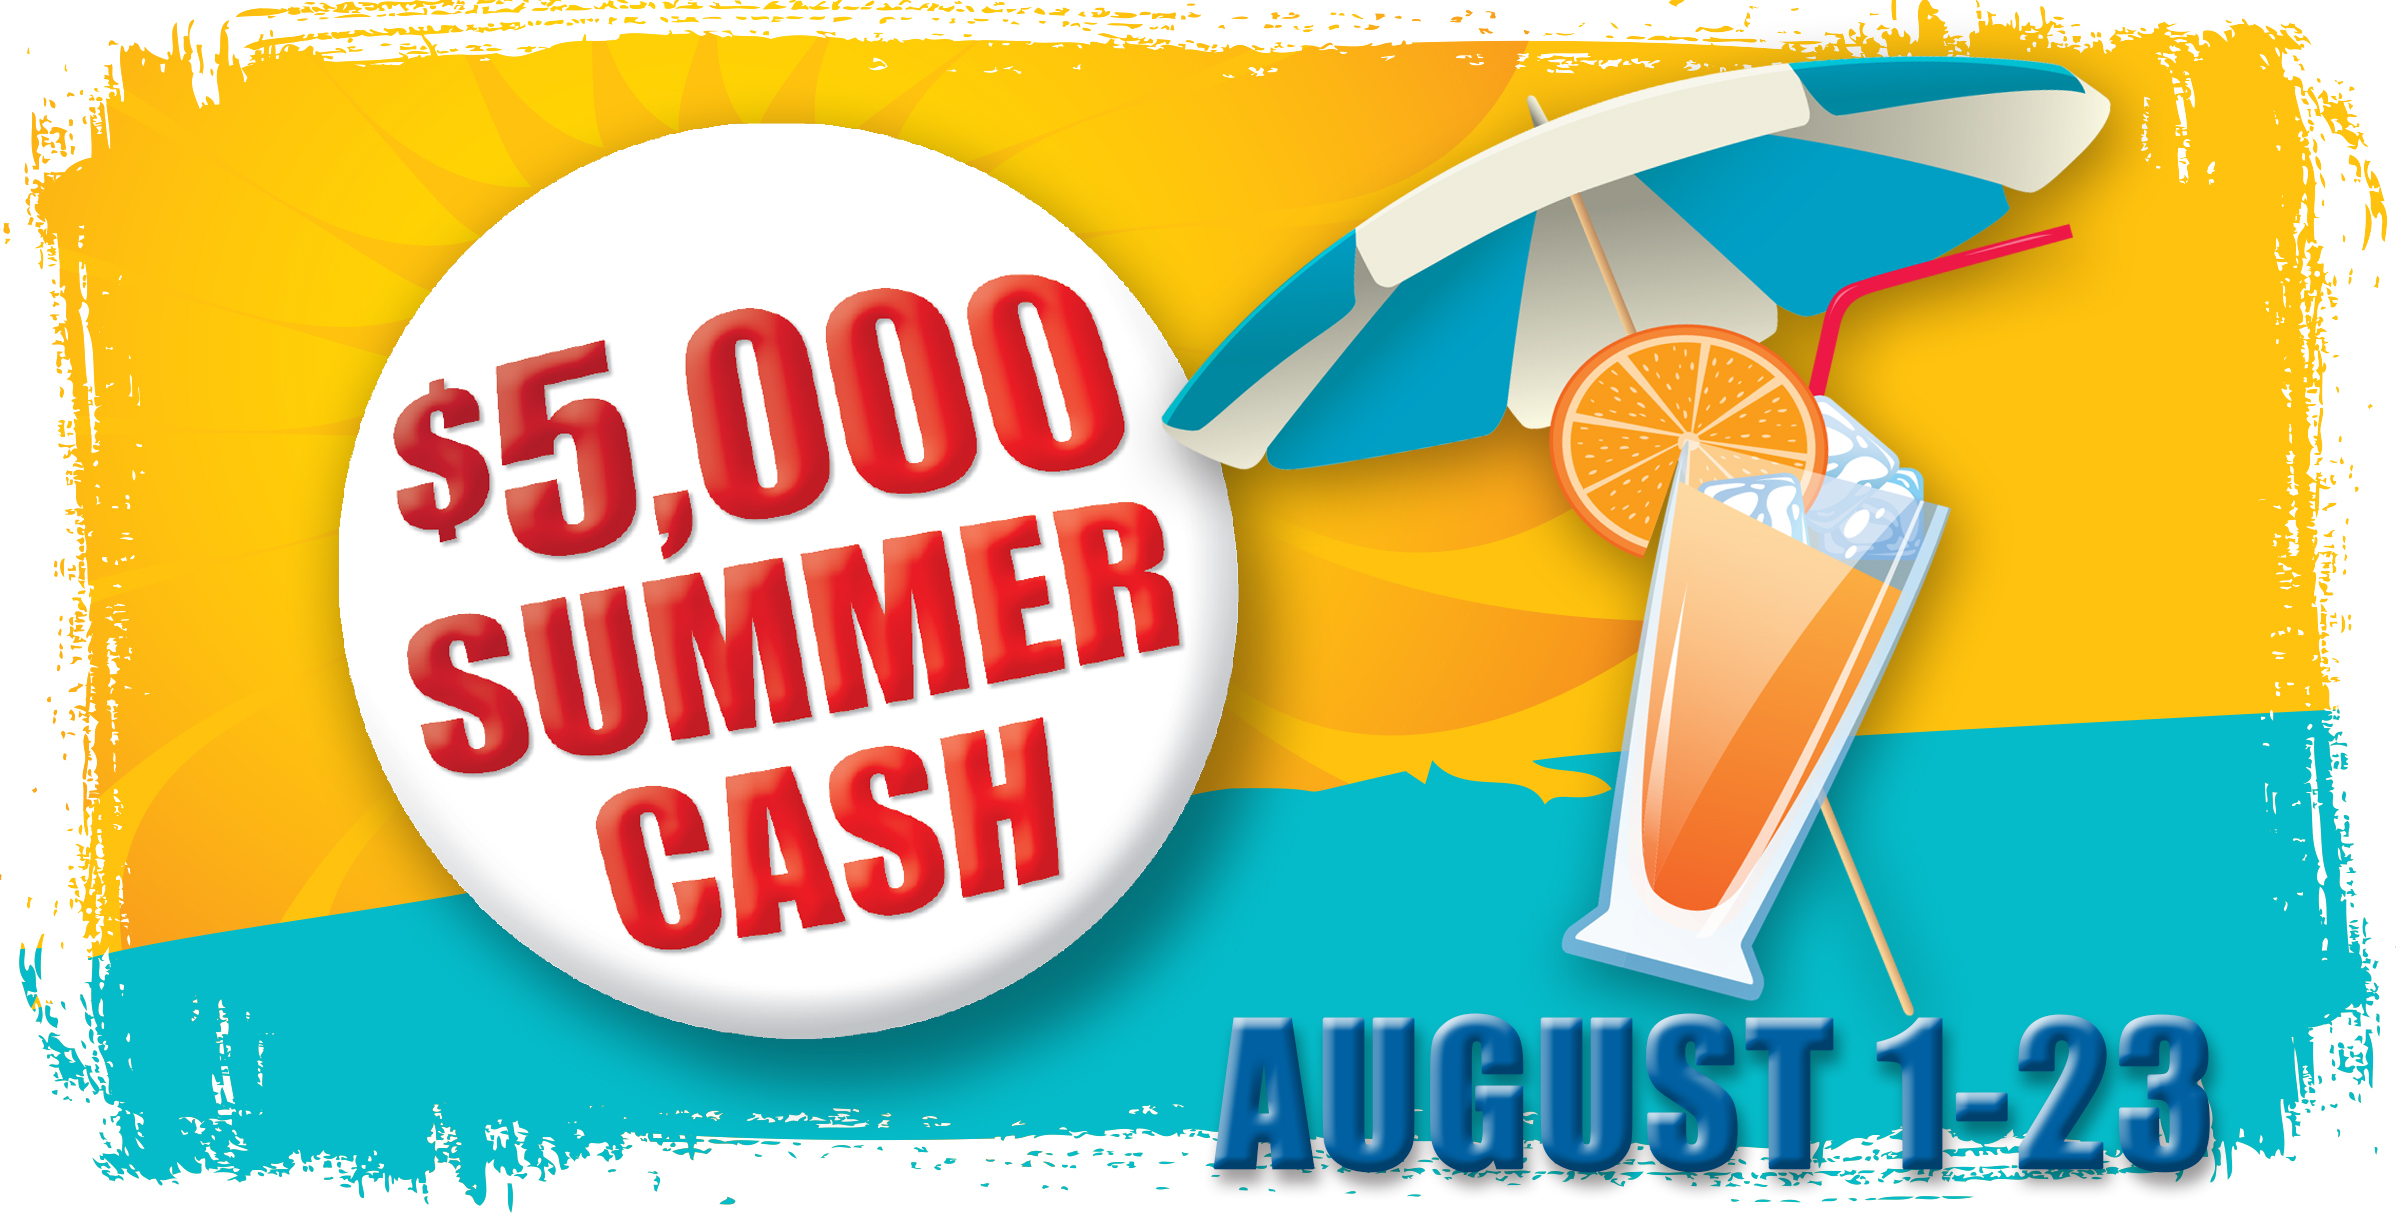 The Island's Promotions, Events, Tournaments & Fun in August